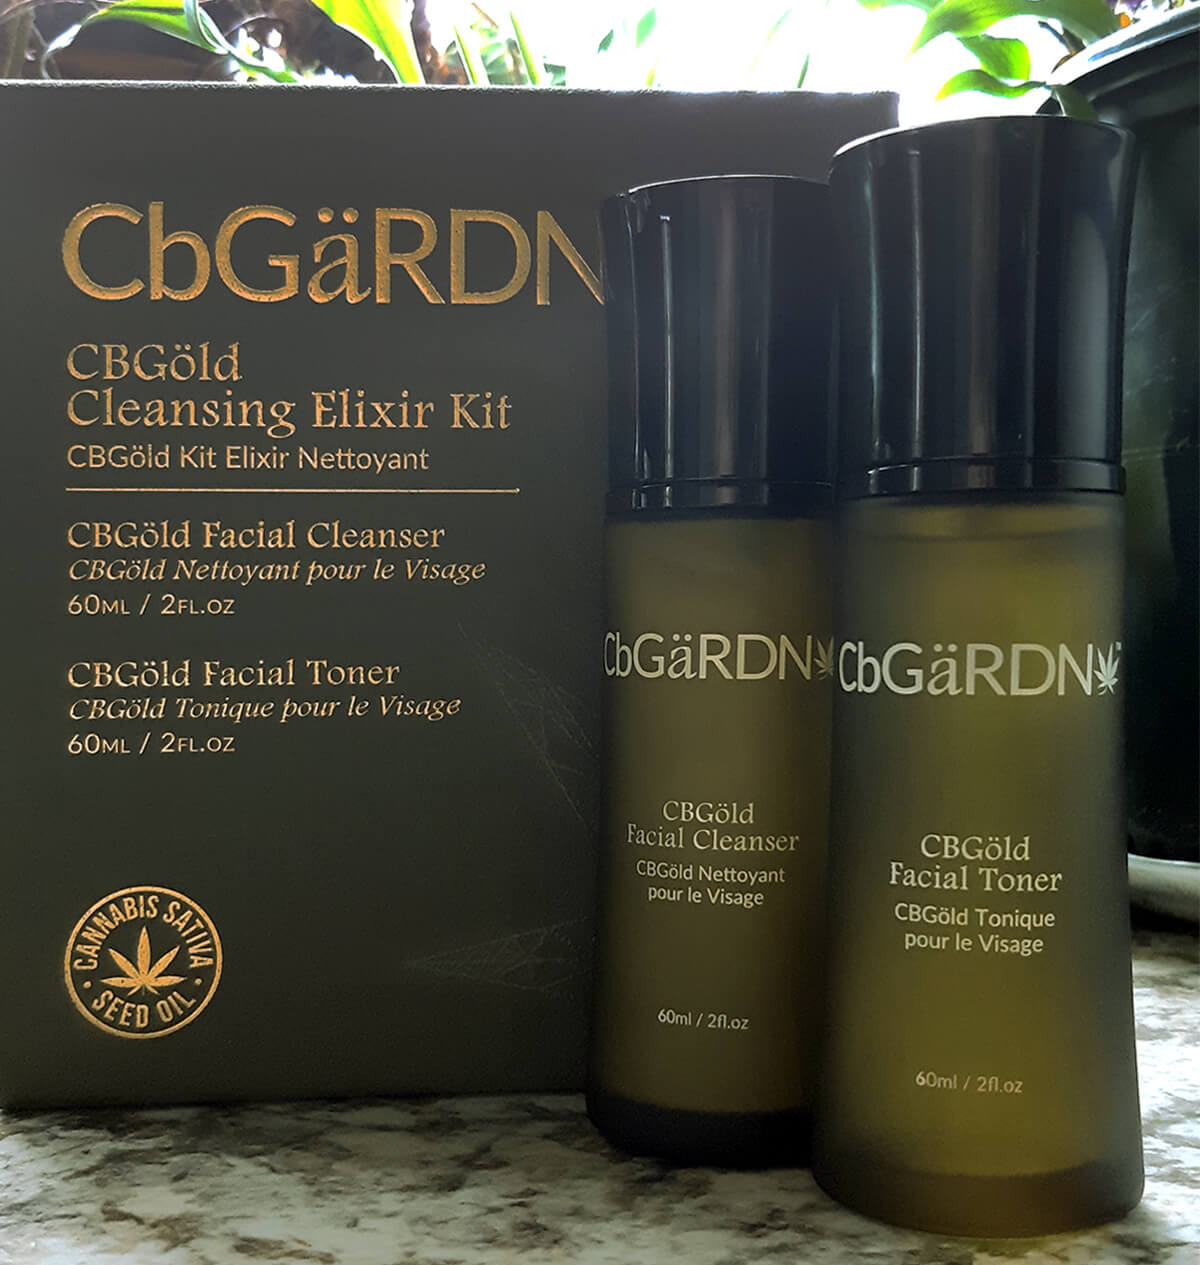 CBGold Cleansing Kit with cleanser and toner